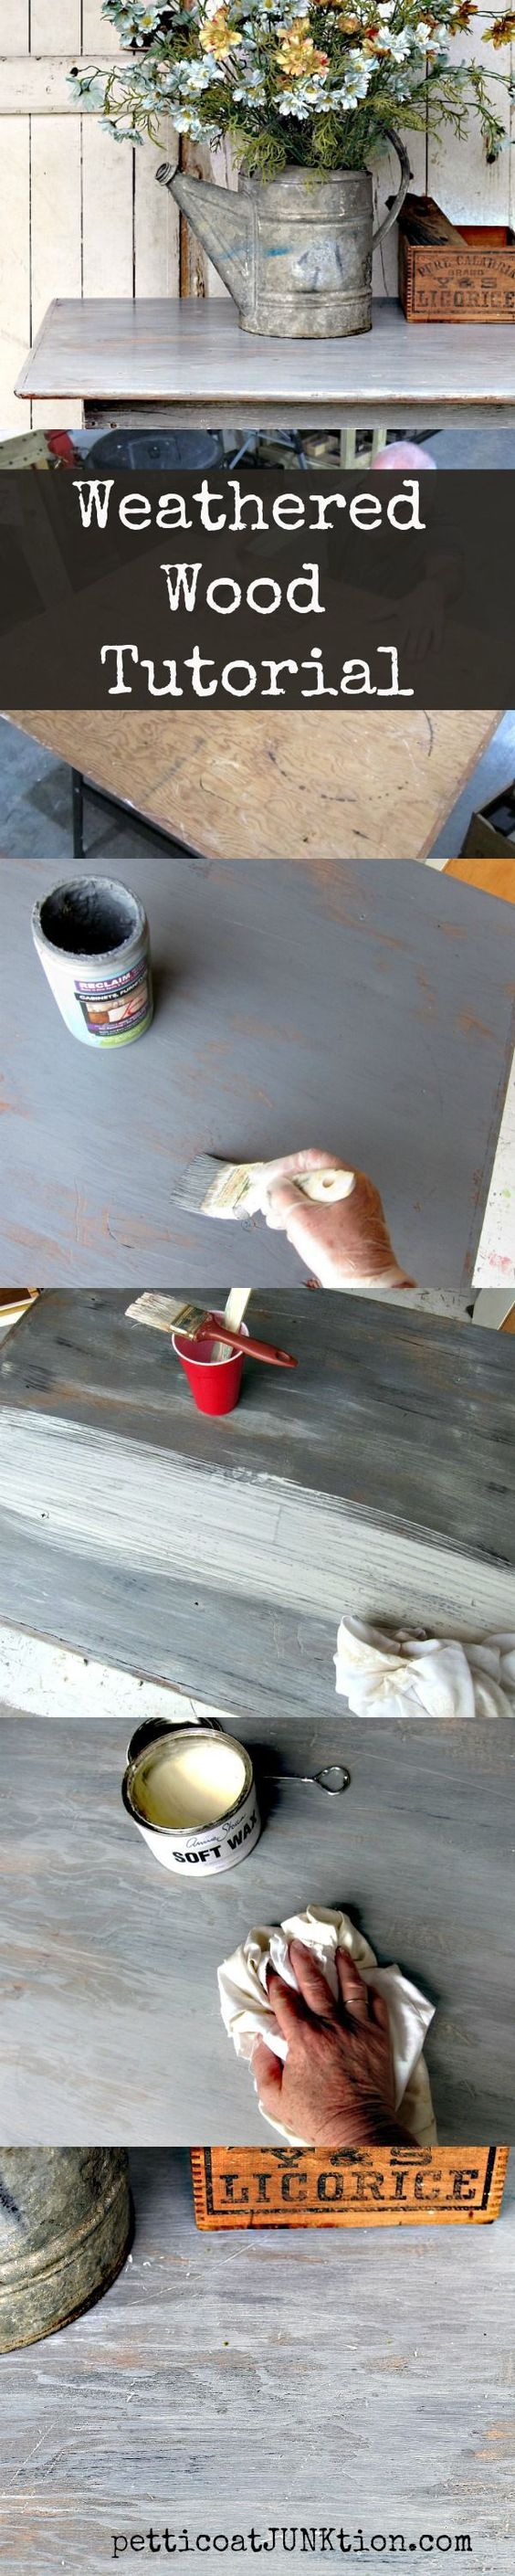 Weathered Wood Tutorial. Simple step by step process for creating a weathered wood finish on unfinished wood. Paint the surface wtih gray paint, dry brush black paint over the gray, then heavily white wash the piece. Photos showing each step in the process. From Petticoat Junktion